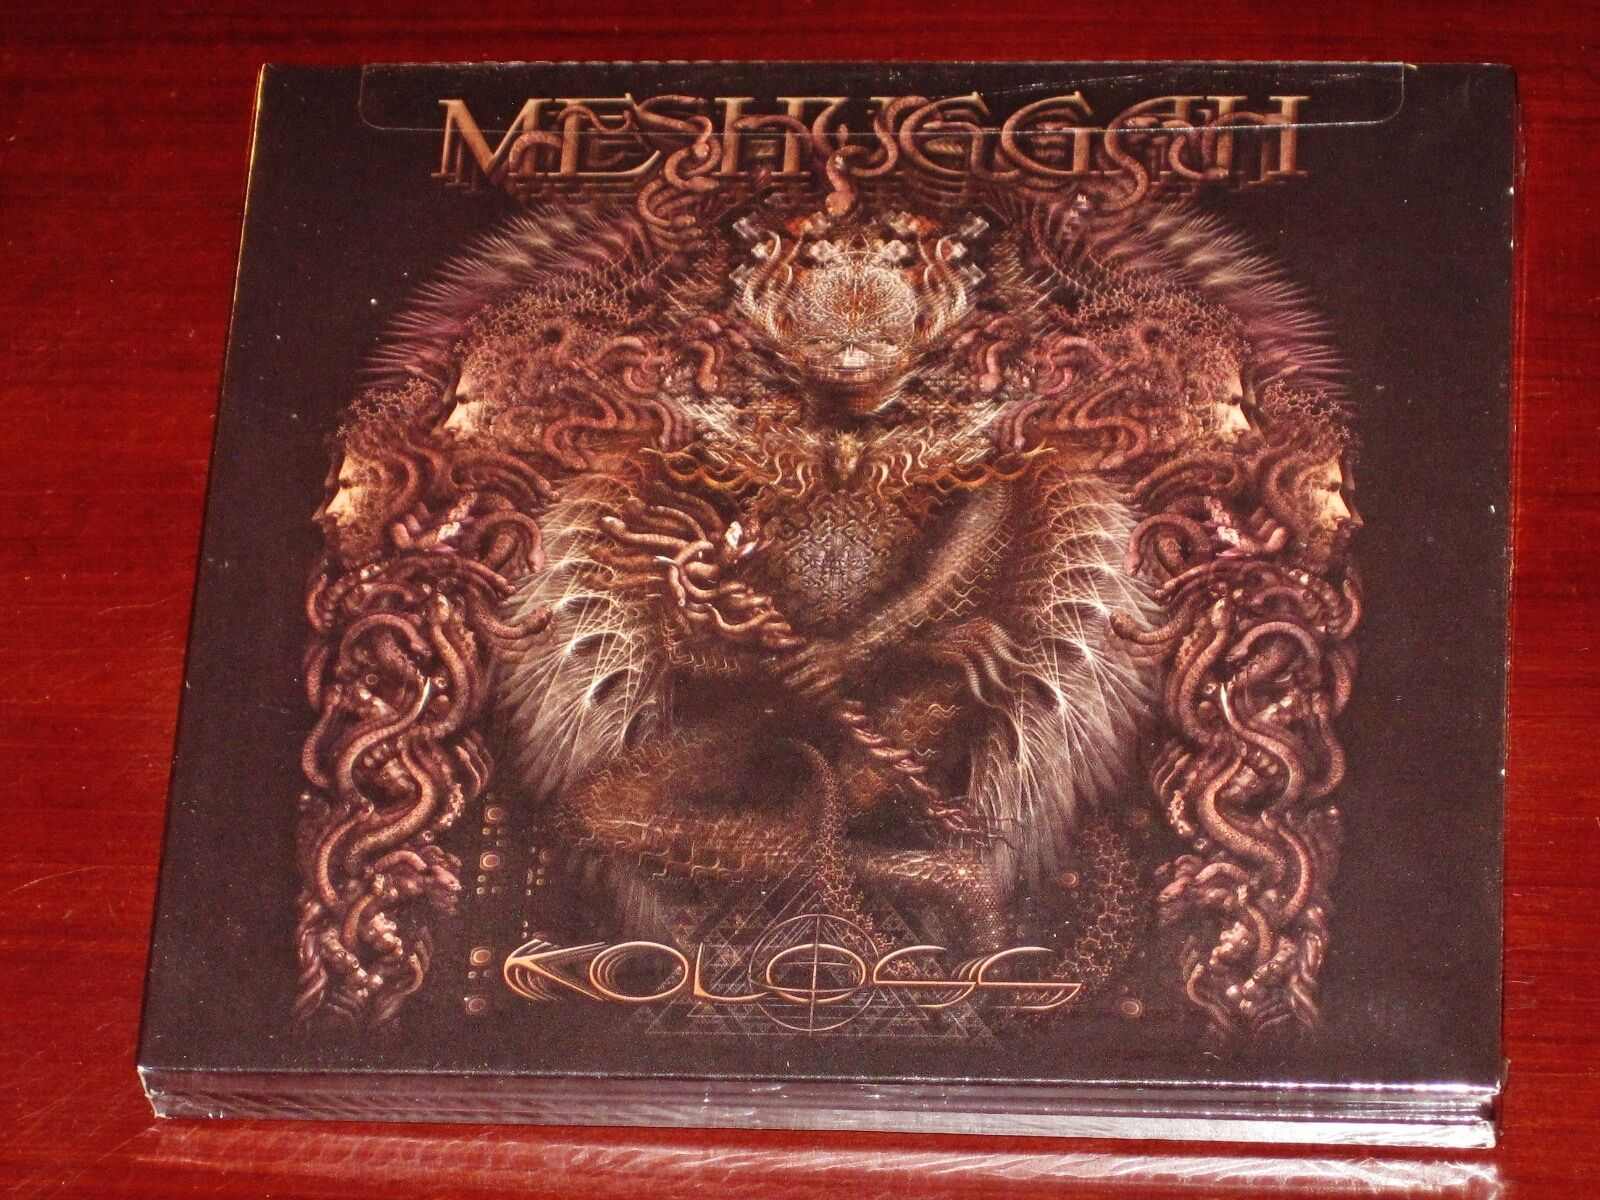 Meshuggah: Koloss Deluxe Edition CD + DVD Set 2012 Nuclear Blast USA Digipak NEW